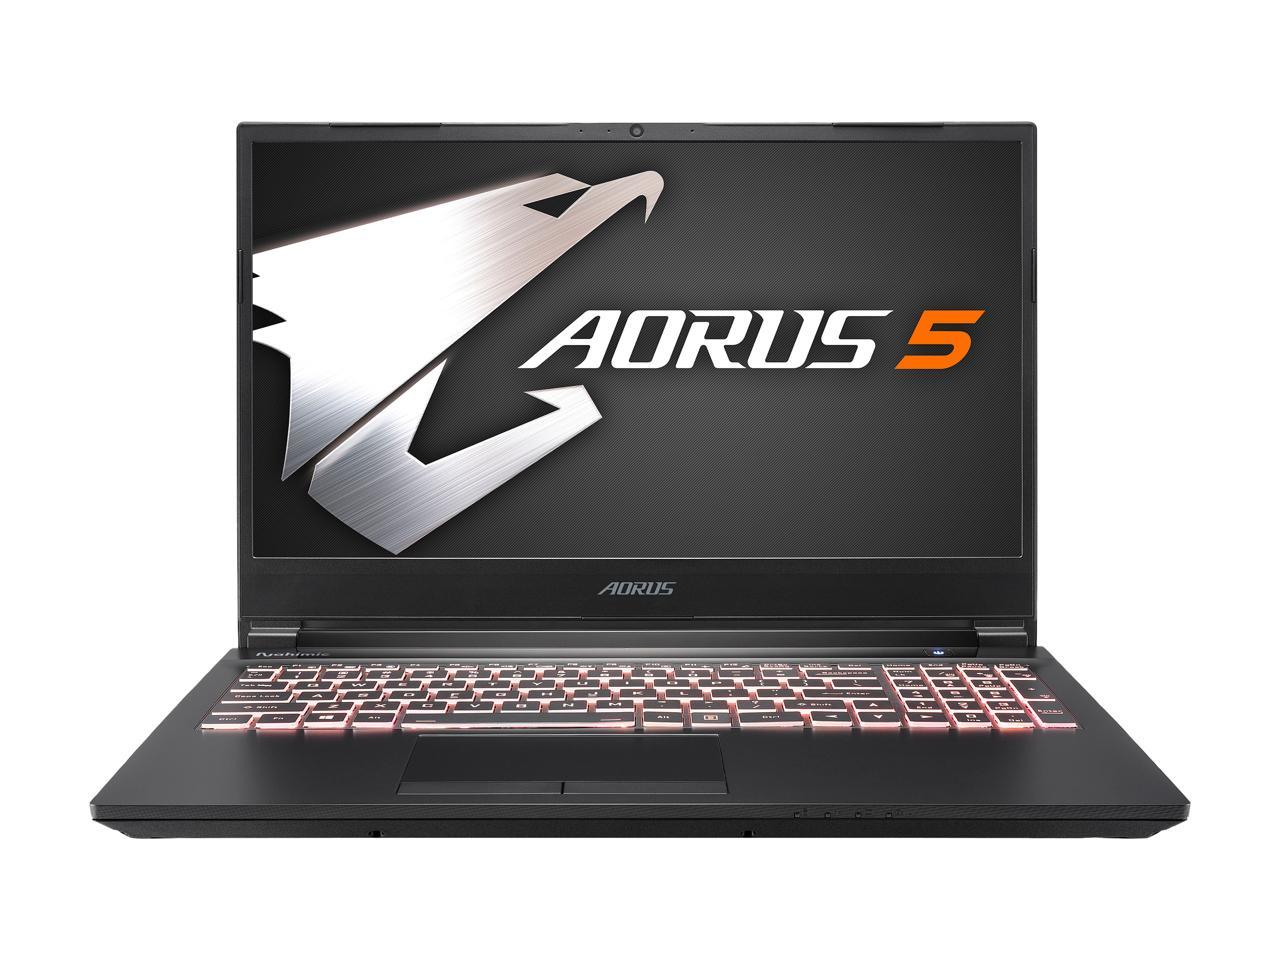 "GIGABYTE Aorus 5 15.6"" Intel Core i7-10750H GeForce RTX 2060 16GB DDR4 RAM 512GB SSD Gaming Laptop,  KB-7US1130SH"